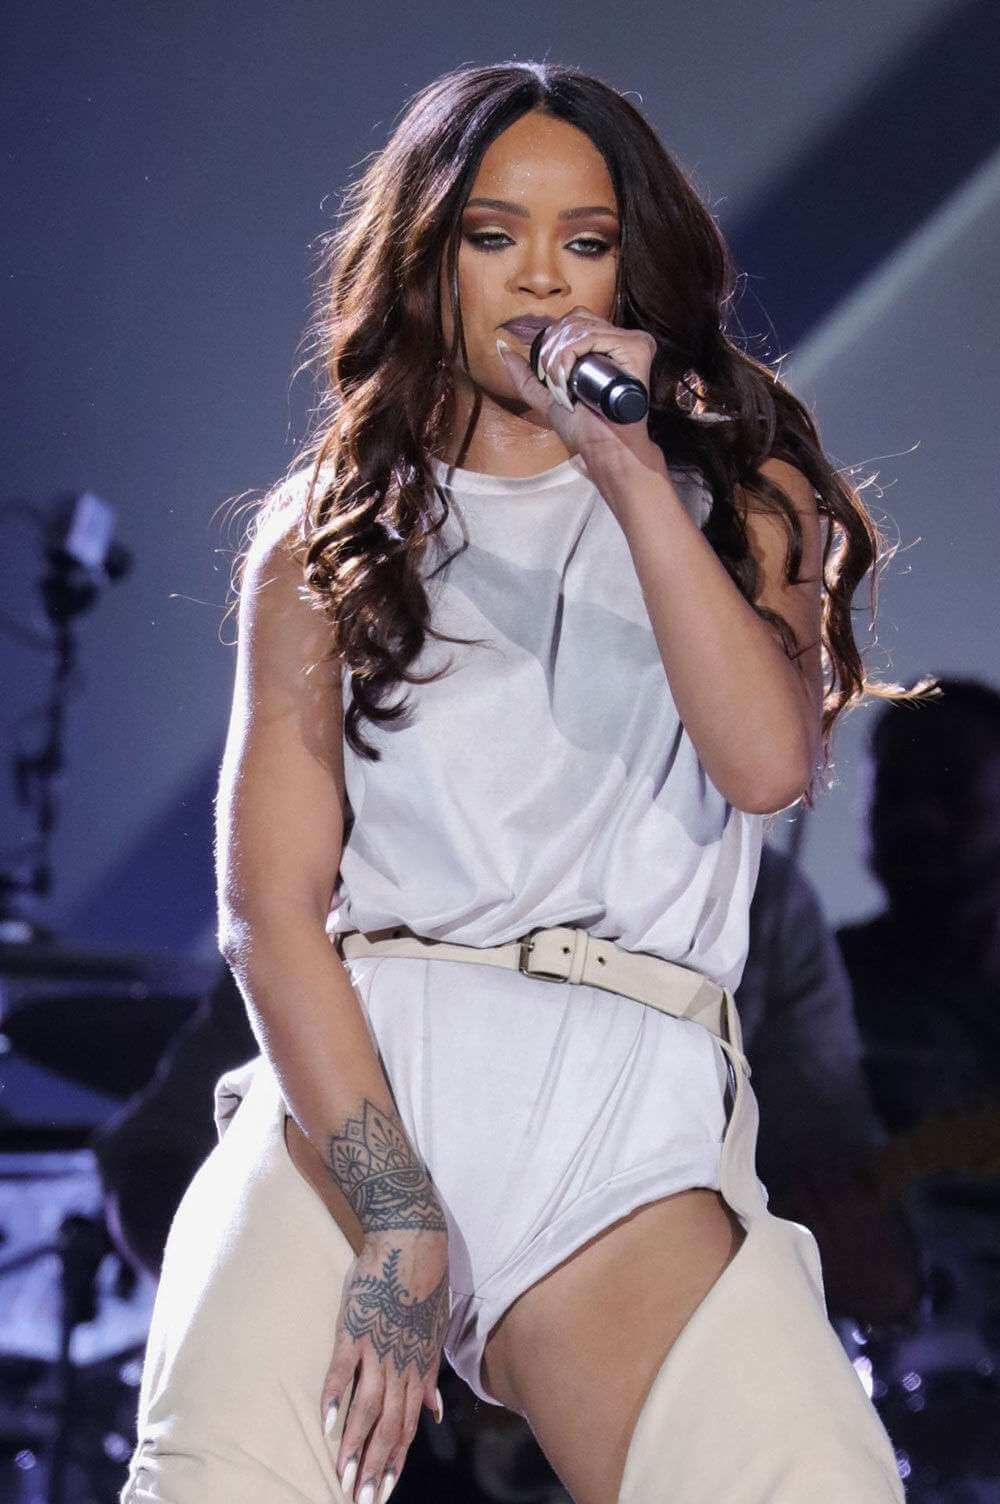 Rihanna performs at Meazza Stadium in Milano, Italy 1